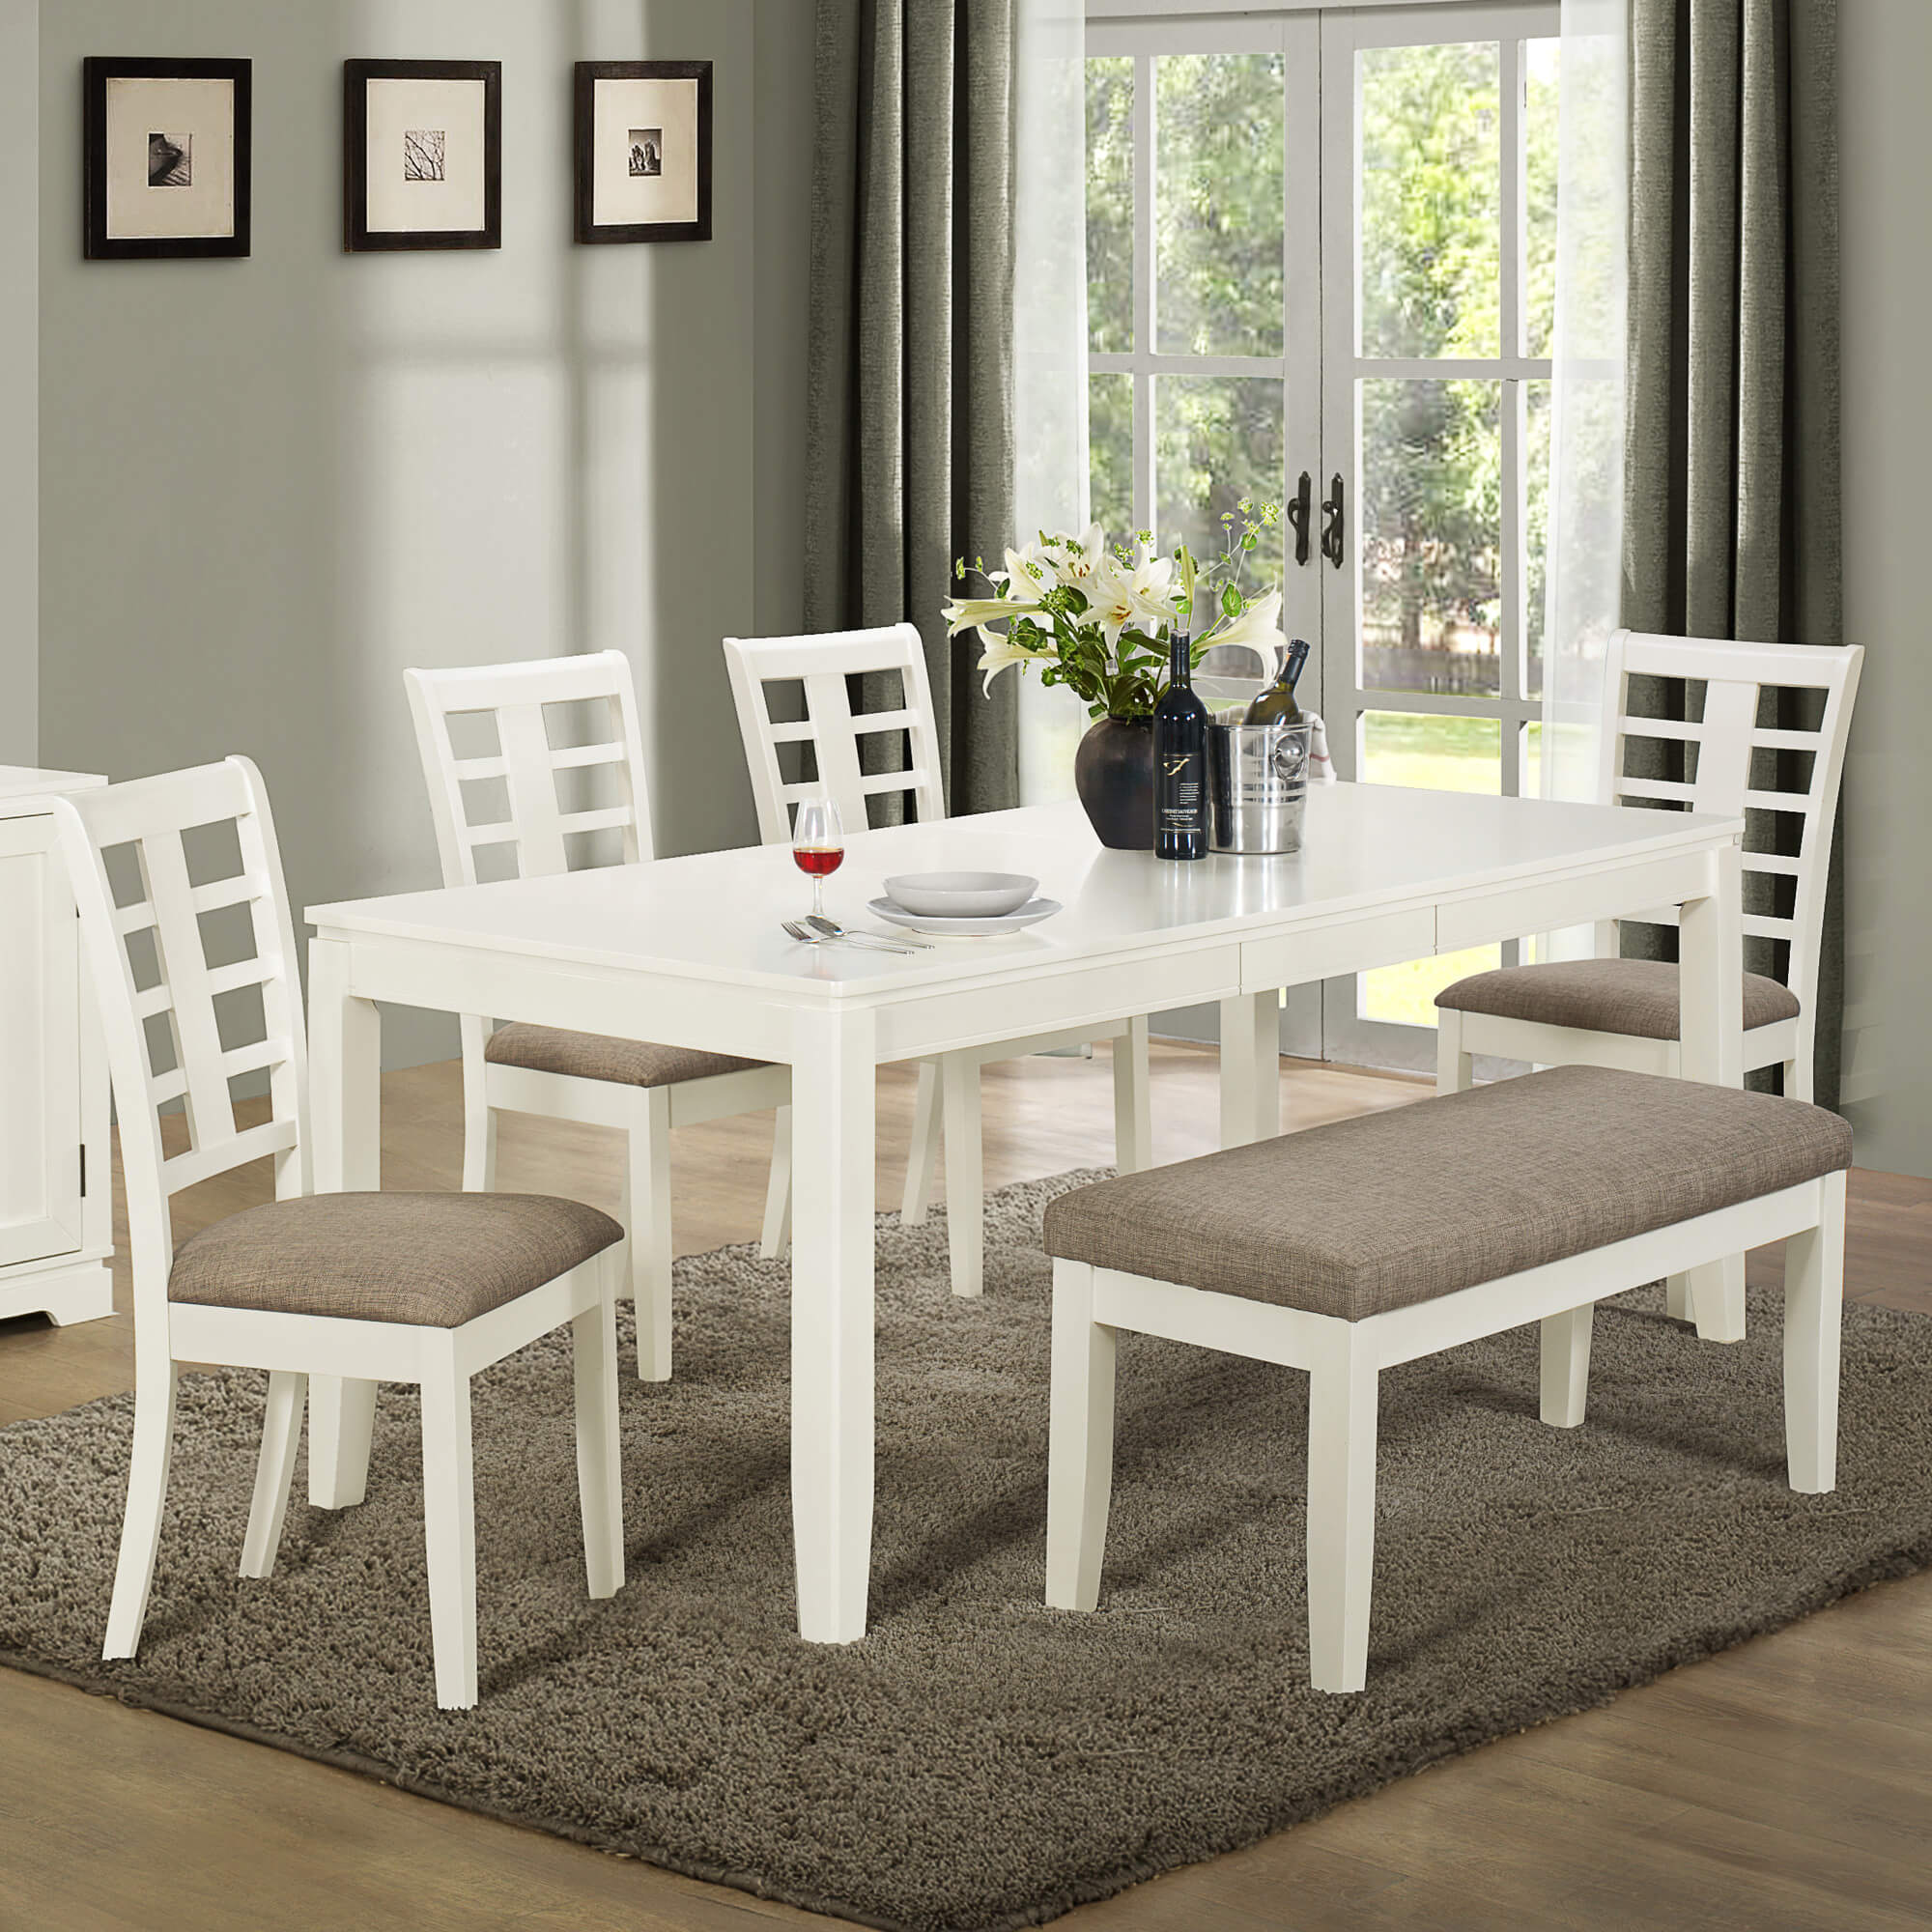 4 Seater Dining Table Cover 4 Seater Dining Table Cover t Wall